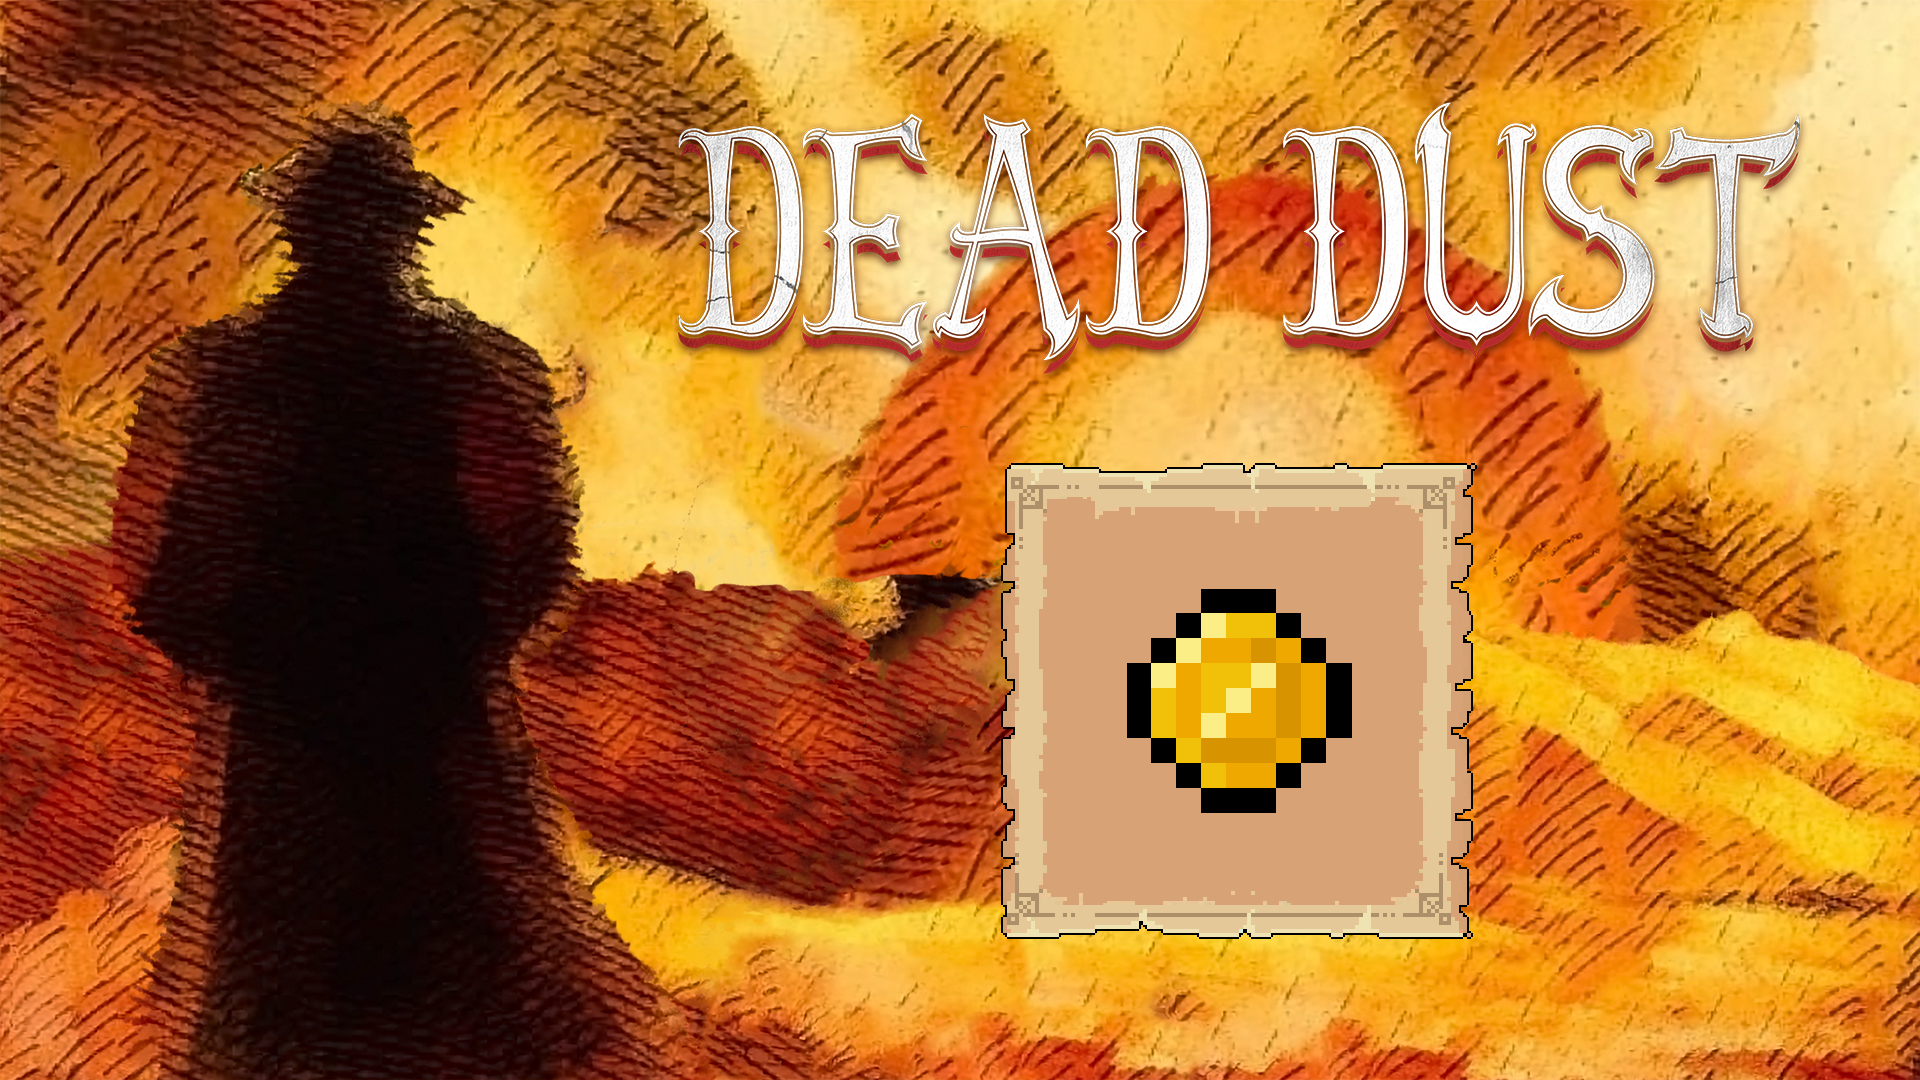 Icon for A fistful of dollar